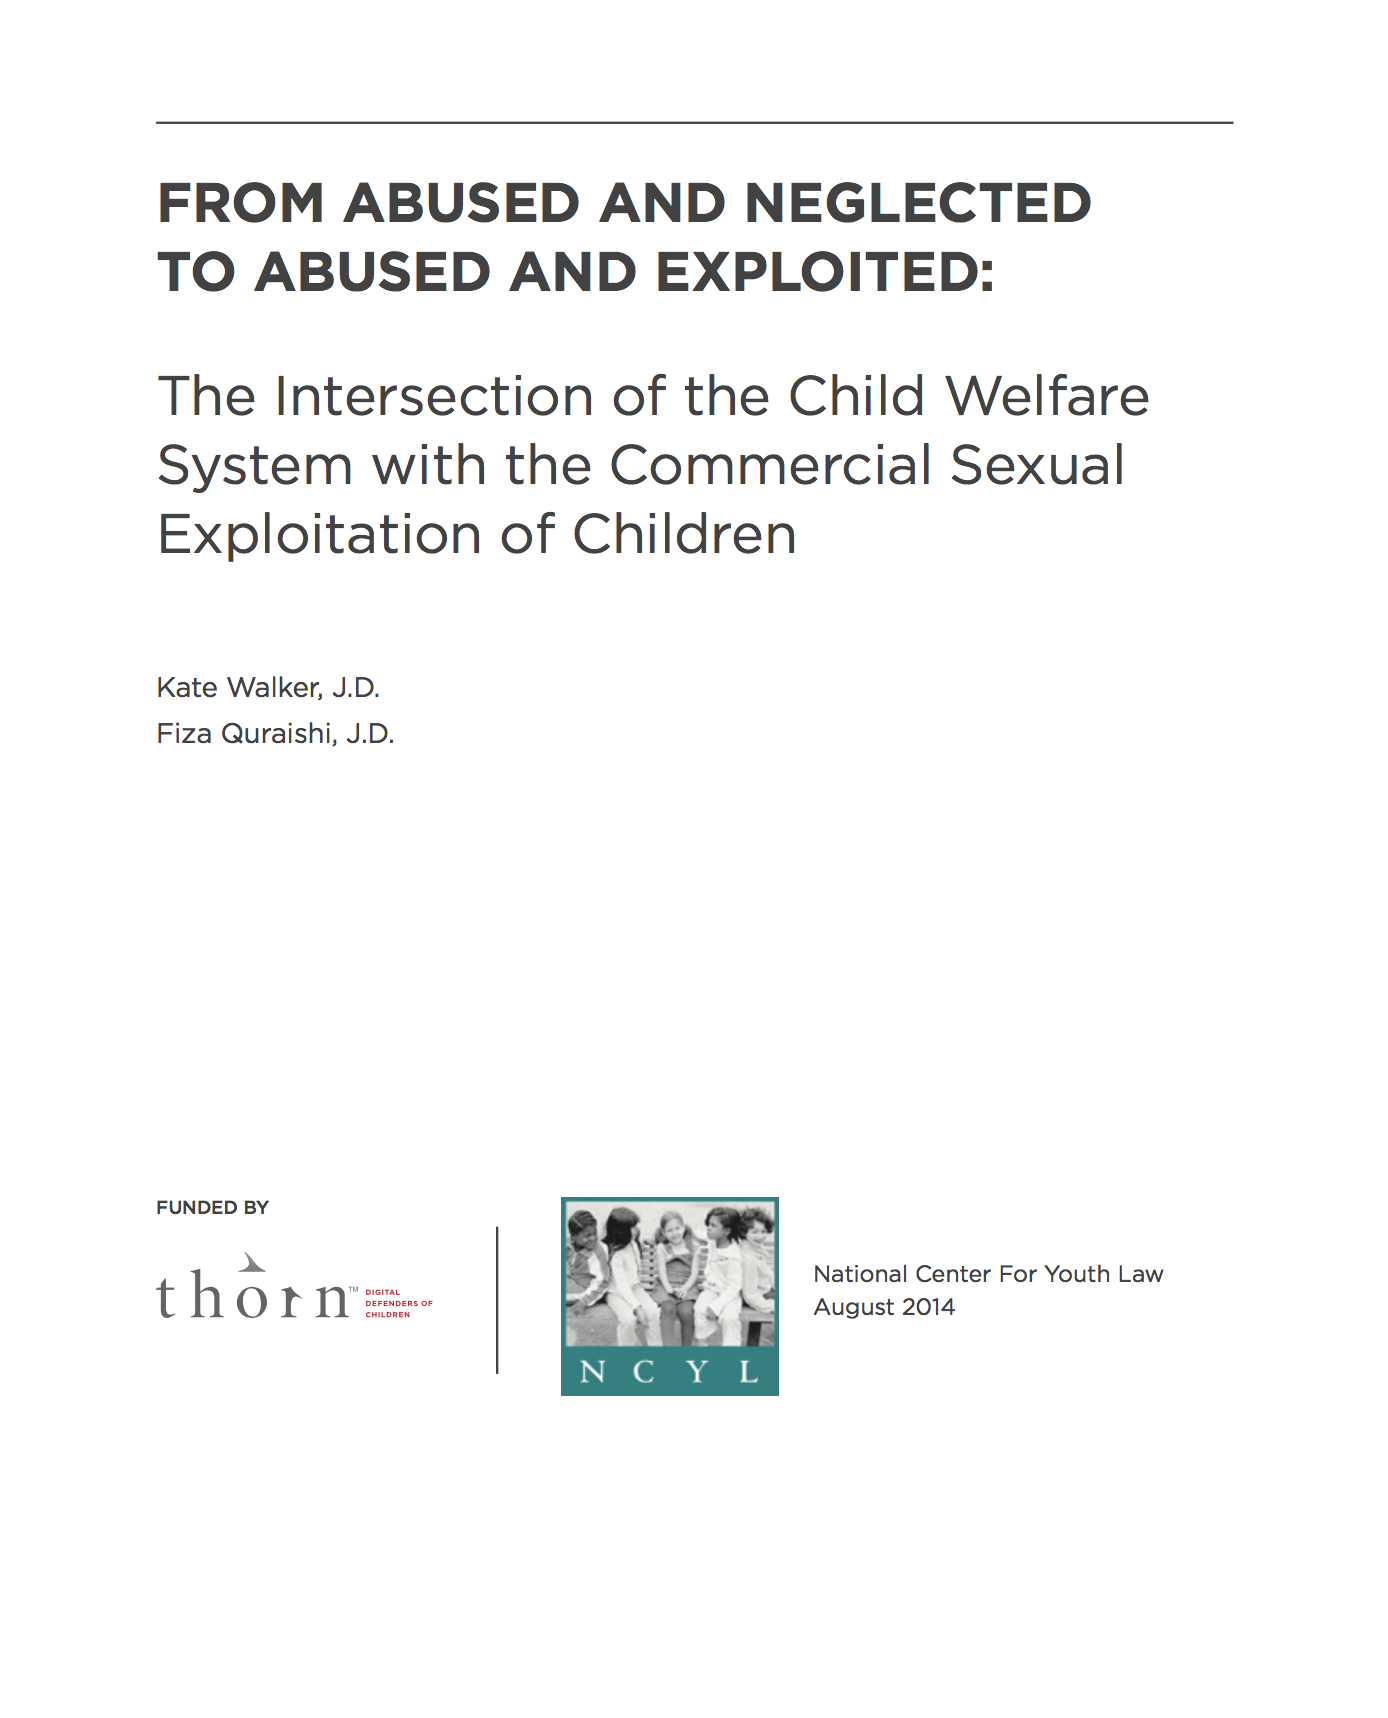 Intersection of the Child Welfare System & CSEC